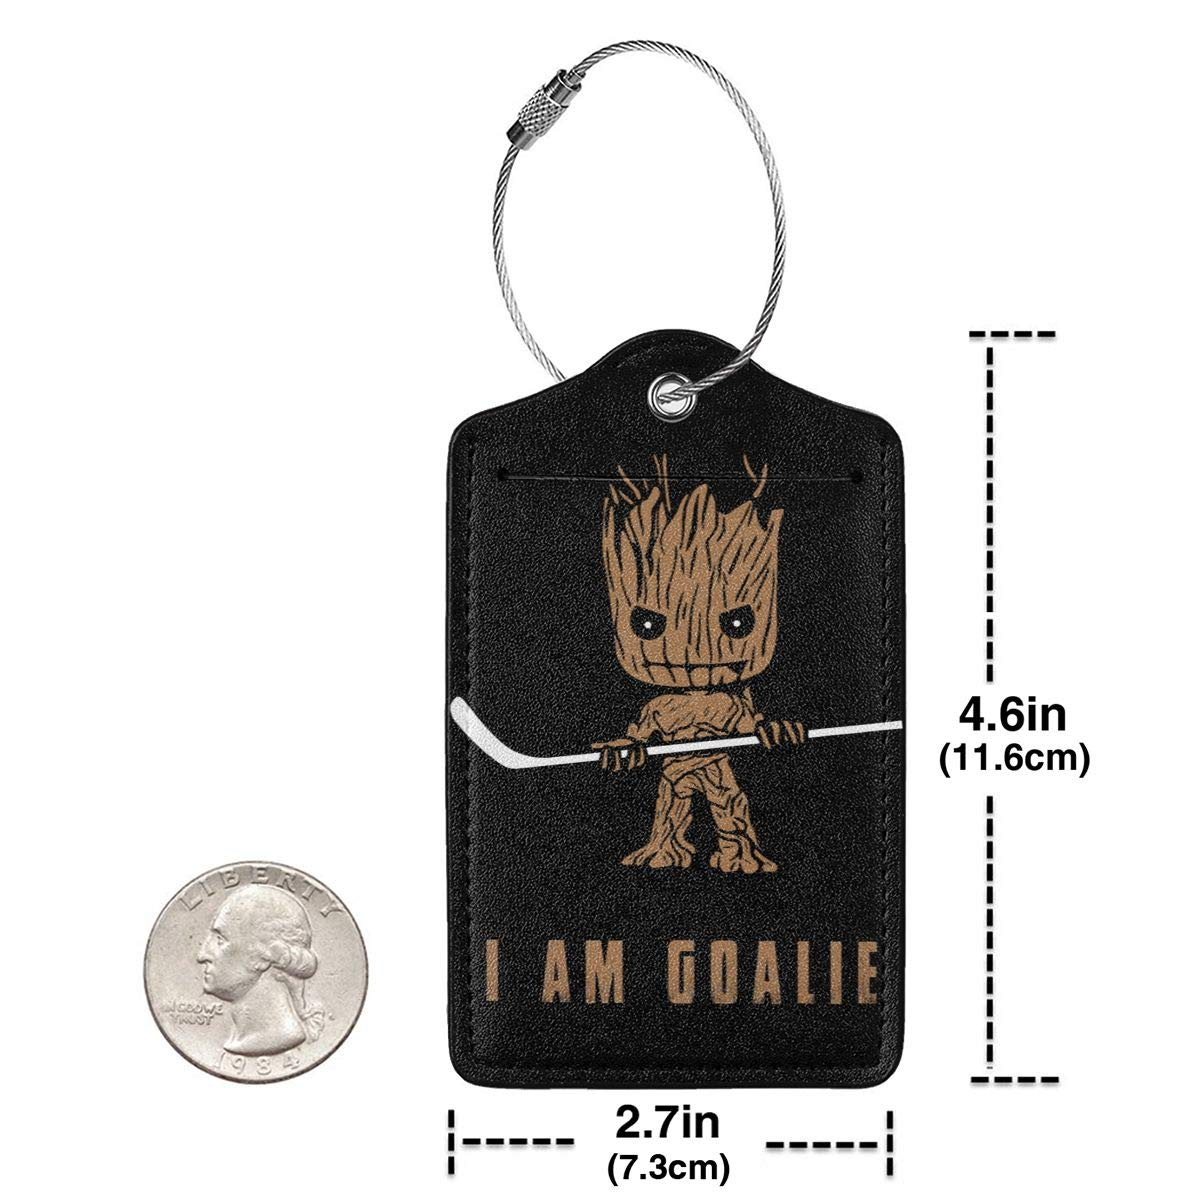 Groot I Am Goalie Hockey Leather Luggage Tag Travel ID Label For Baggage Suitcase